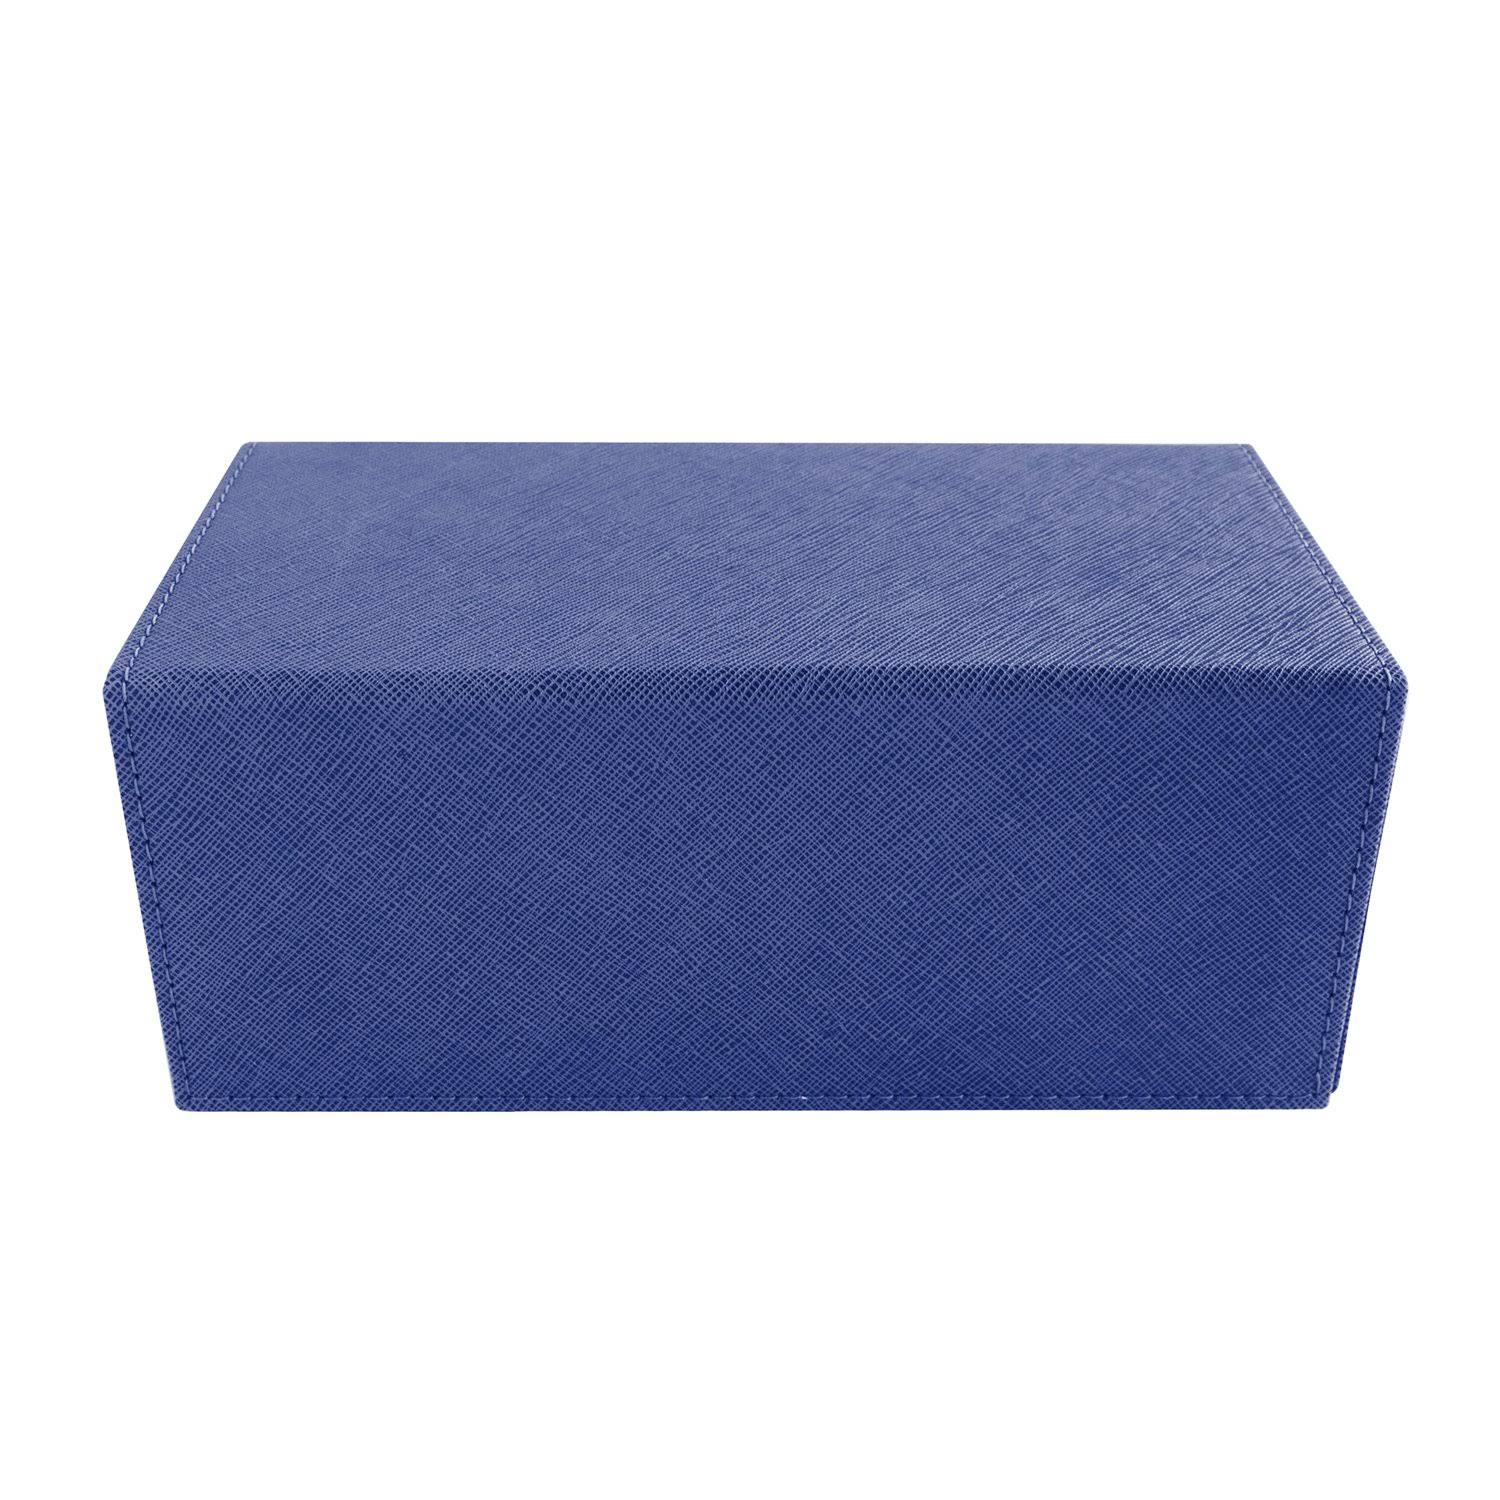 Dex Creation Line Deck Box - Large (Dark Blue)